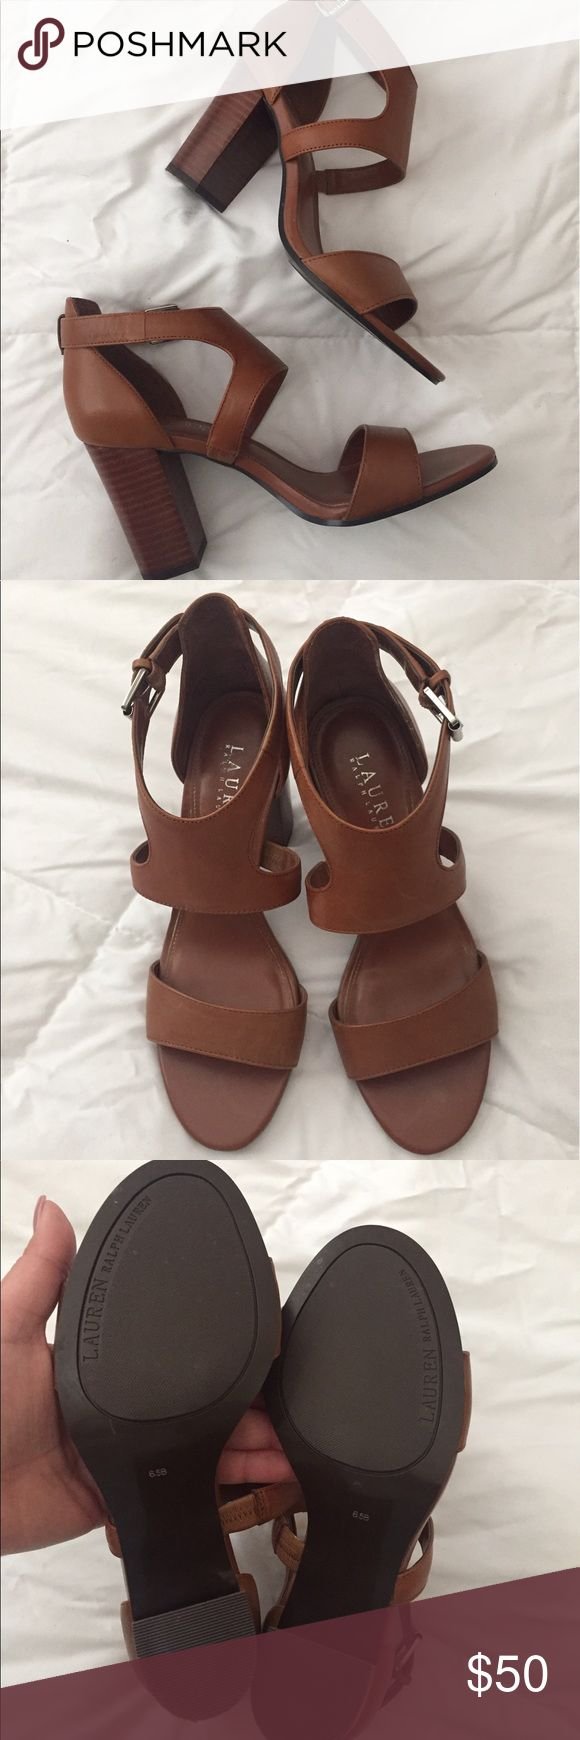 Ralph Laurent luggage thick heel sandals Super cute and comfy Ralph Laurent luggage thick heel sandals. Floor models. In great condition. Lauren Ralph Lauren Shoes Sandals